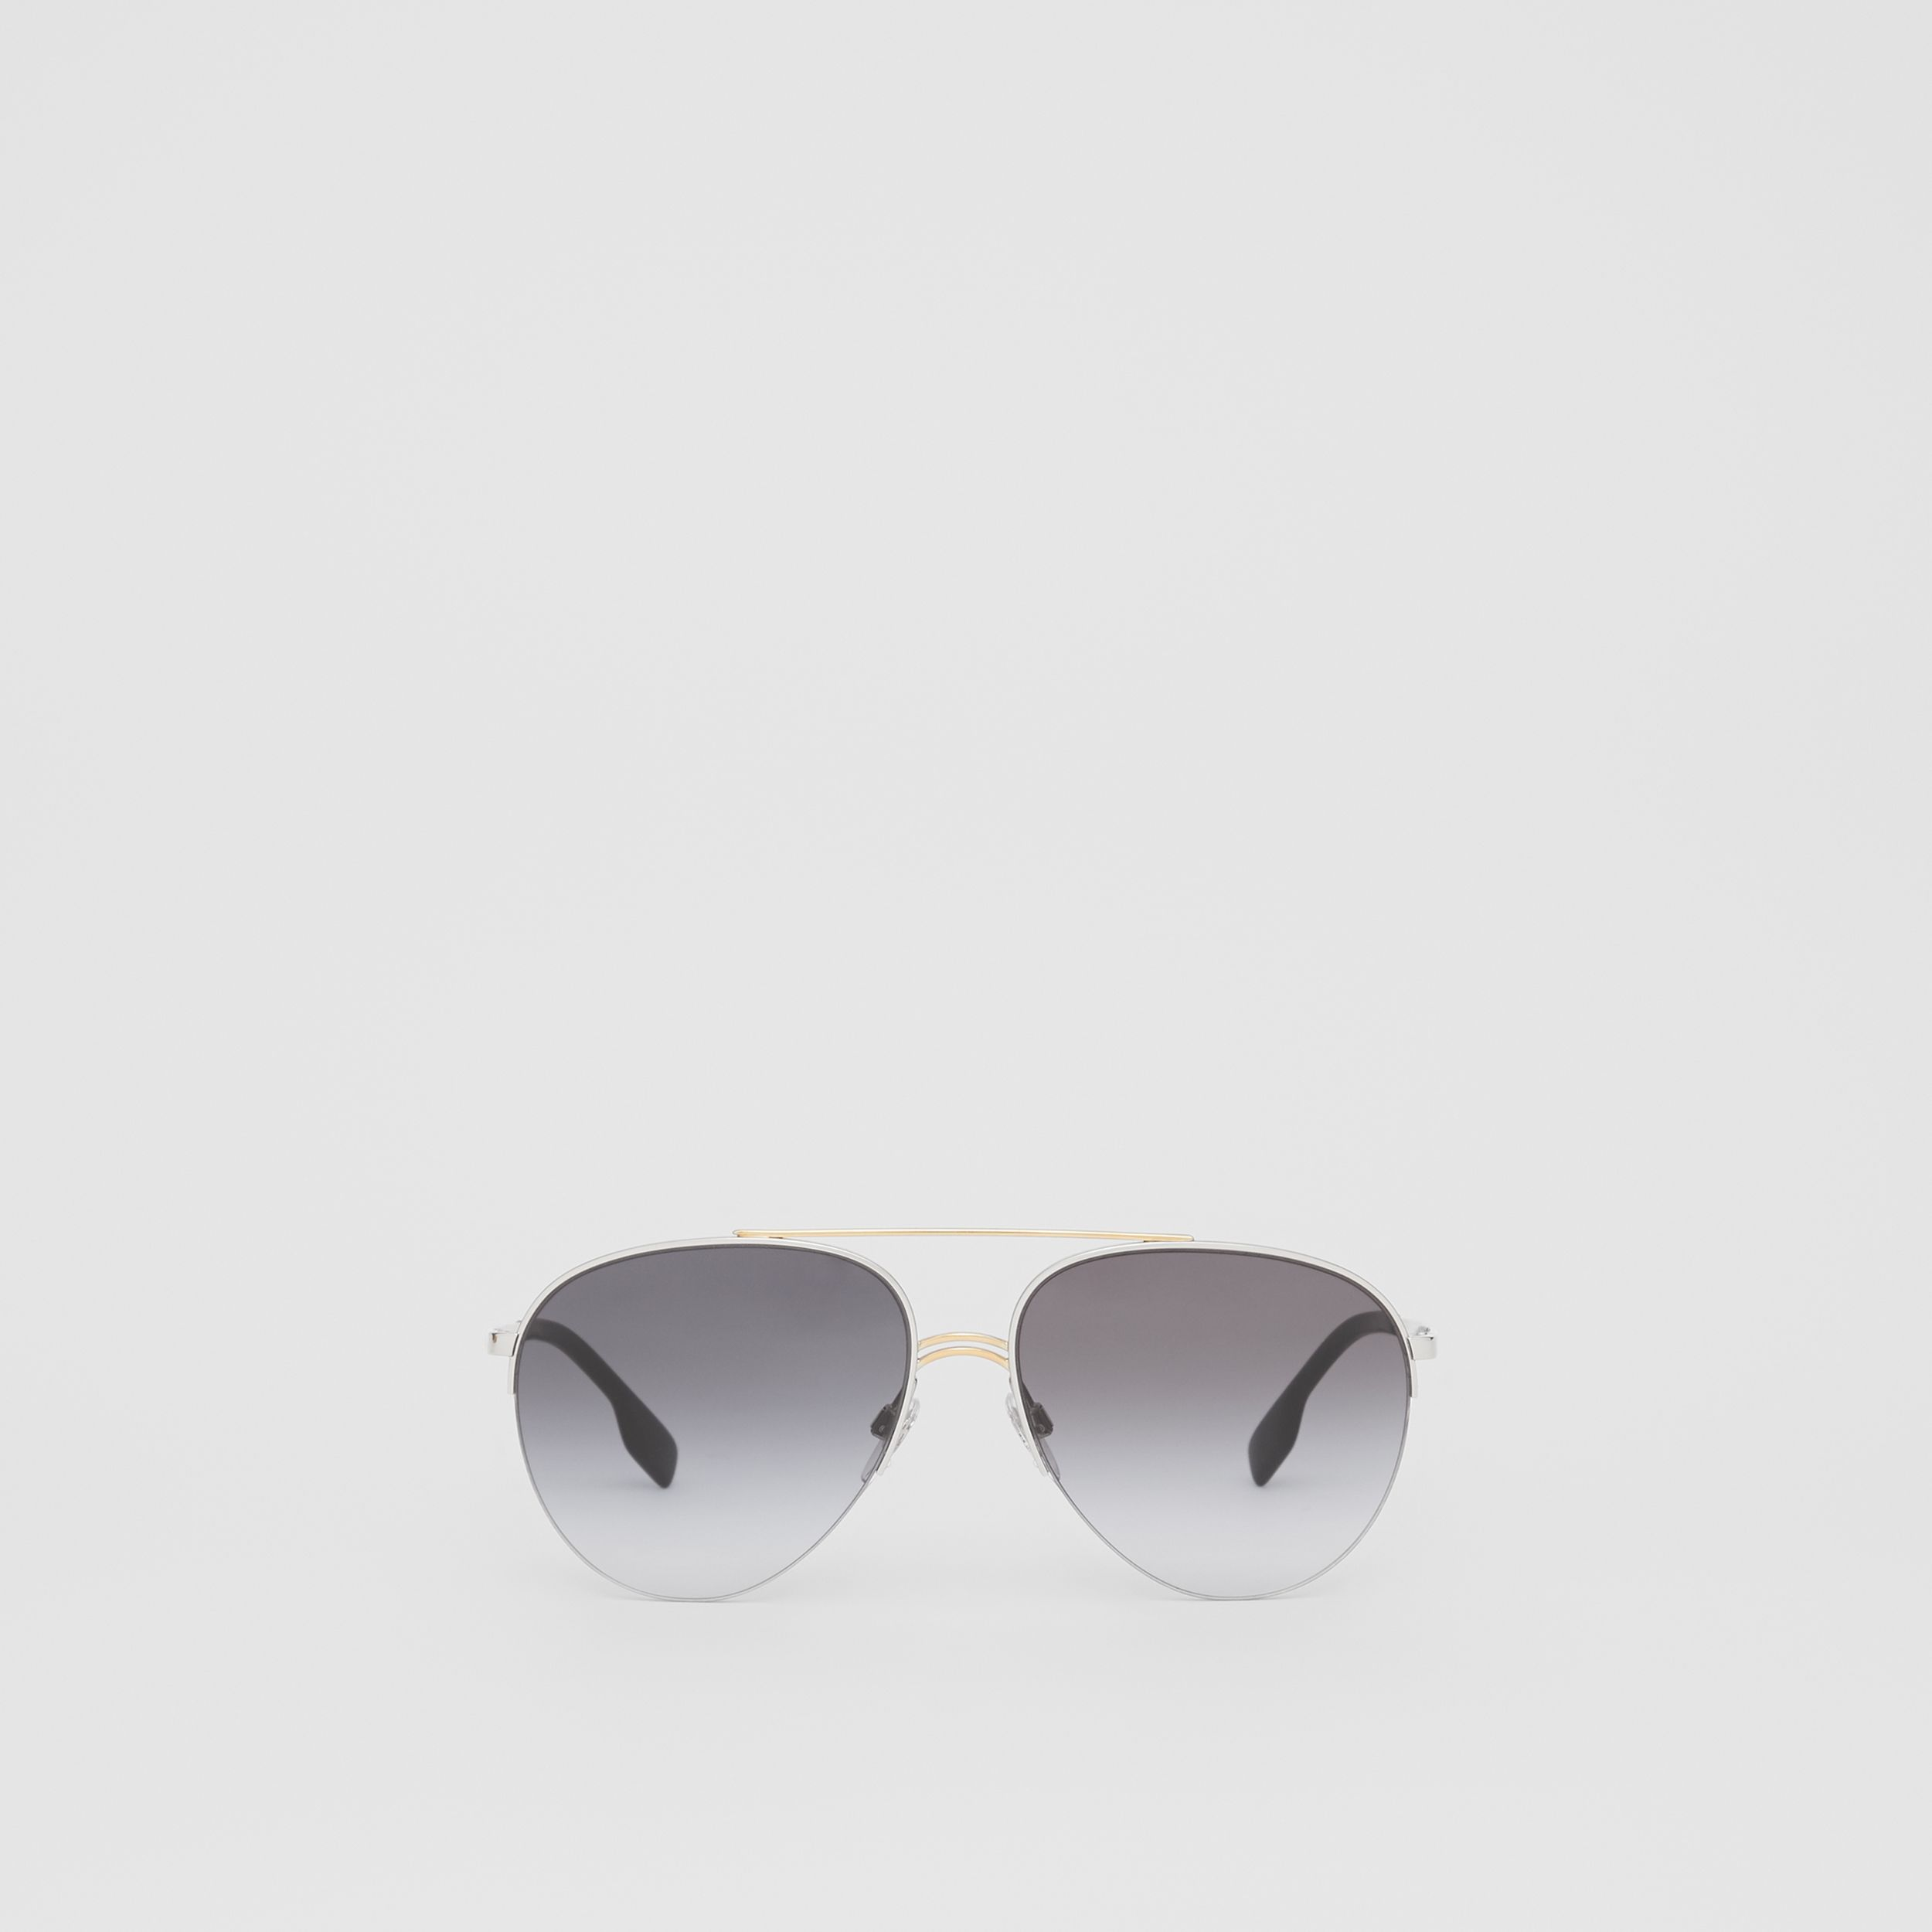 Top Bar Detail Pilot Sunglasses in Dark Grey - Women | Burberry - 1